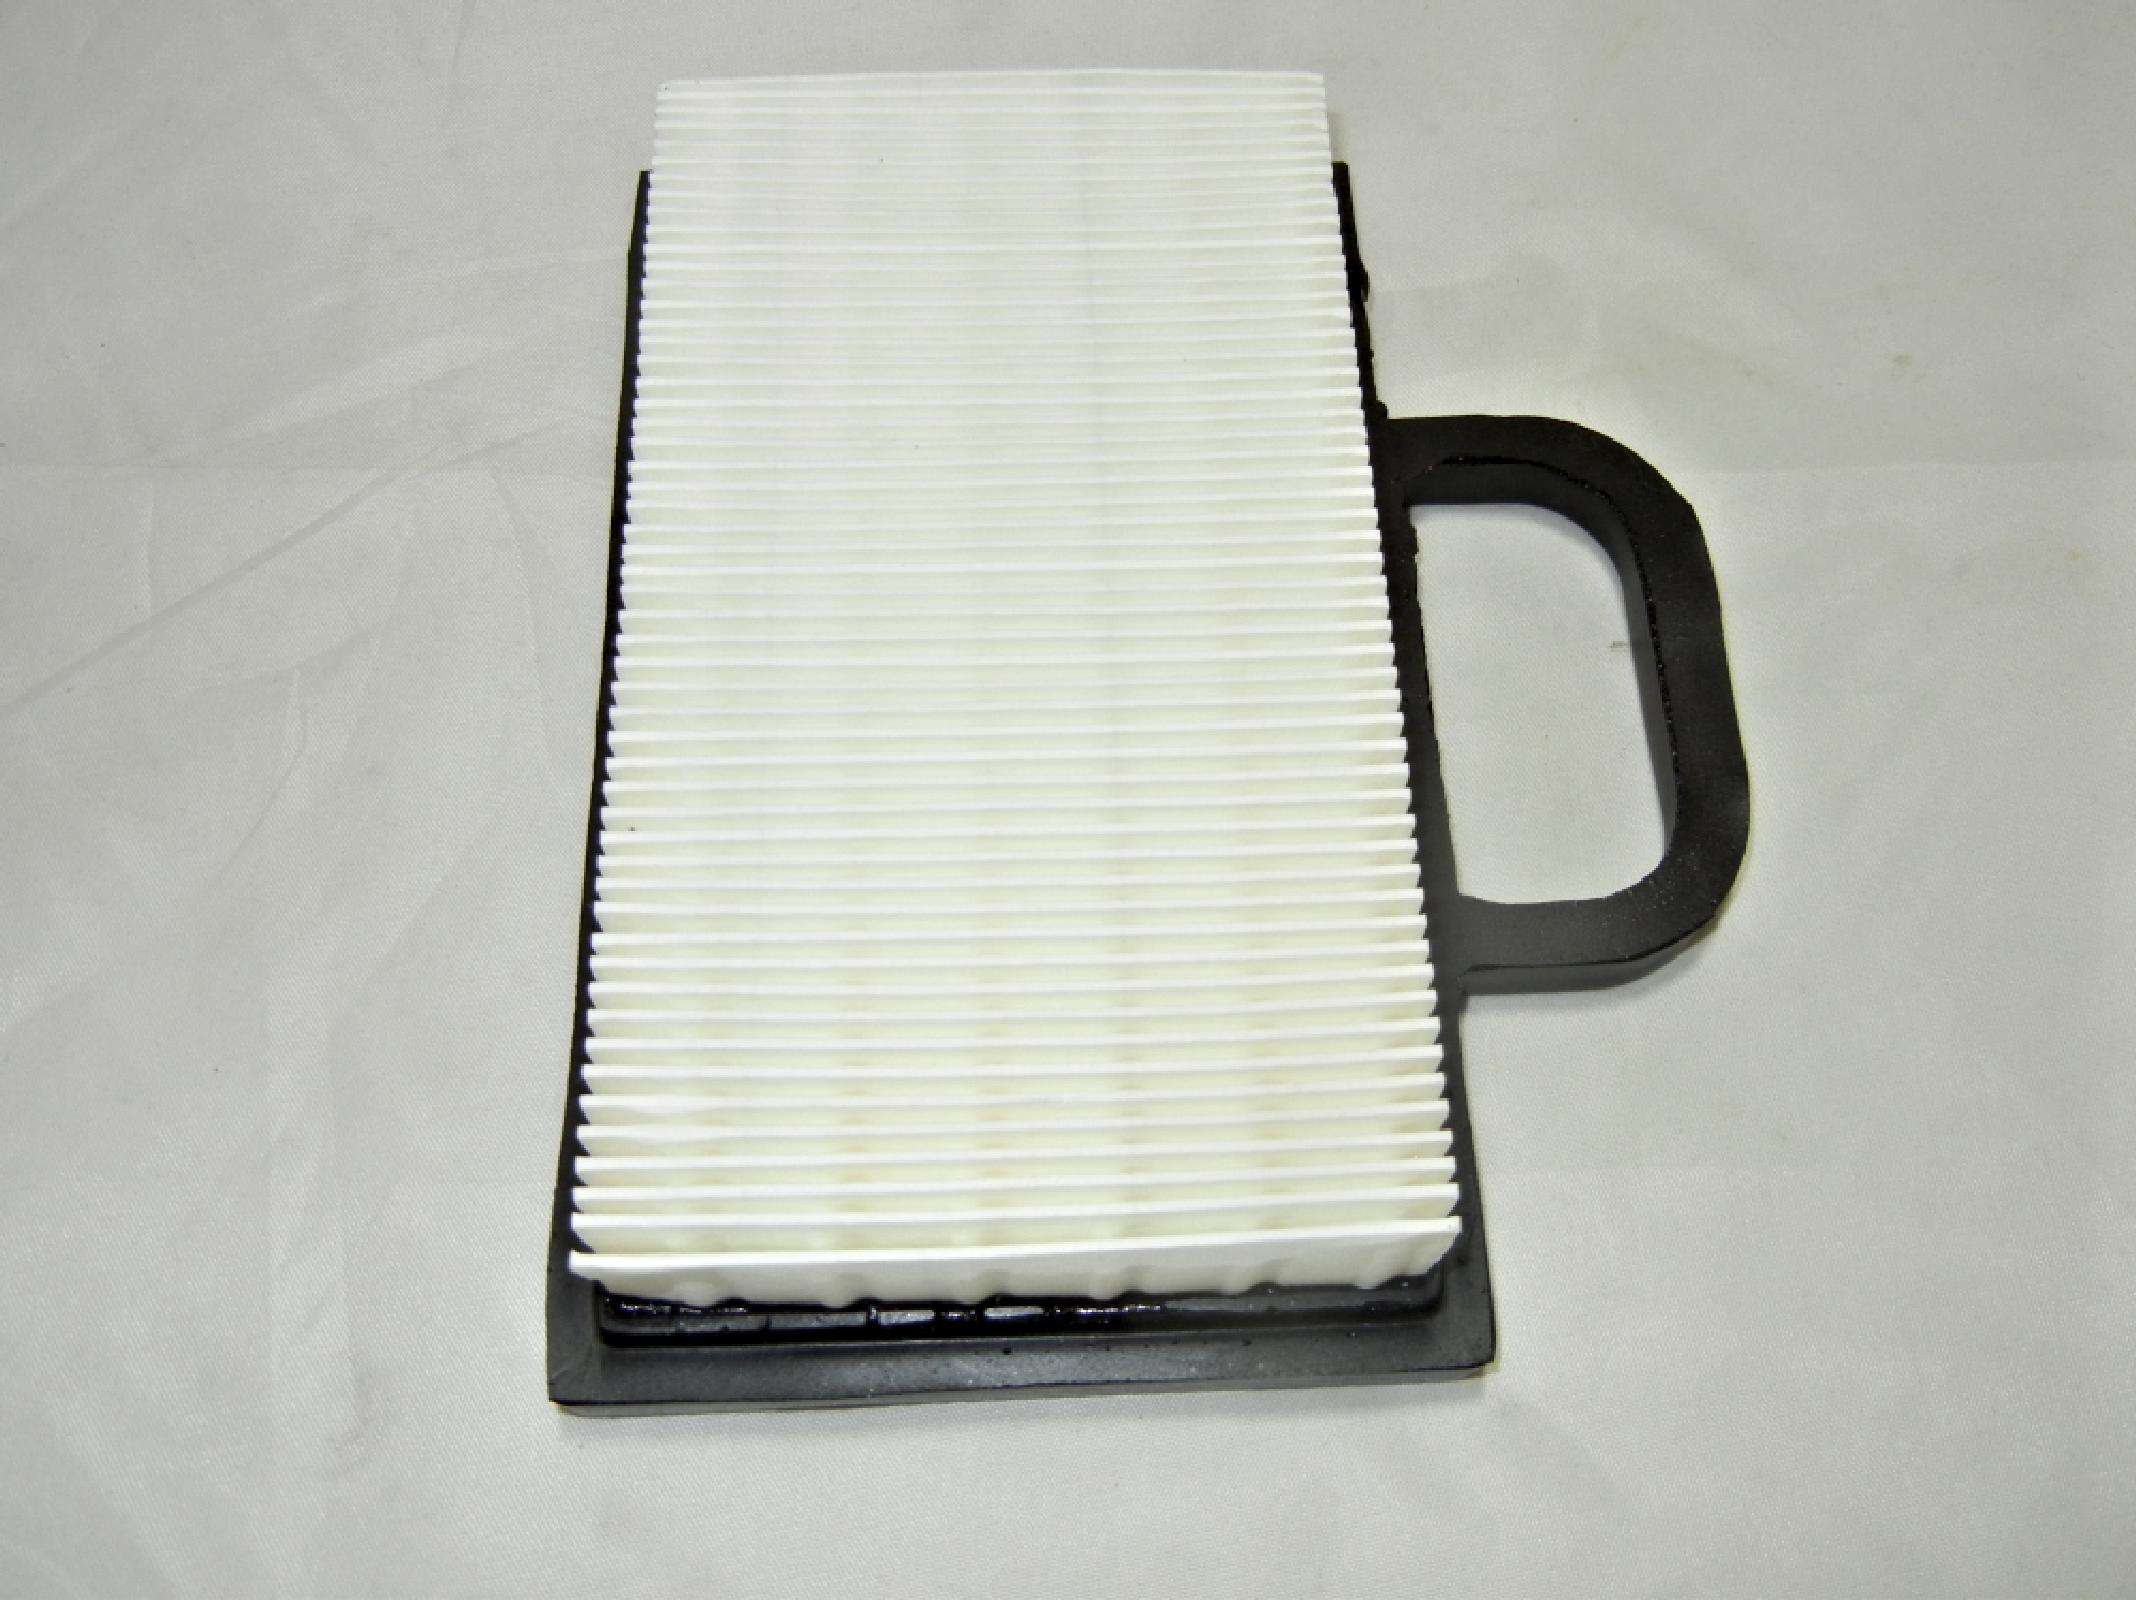 Air filter replaces Briggs & Stratton 499486, 698754 , Oregon